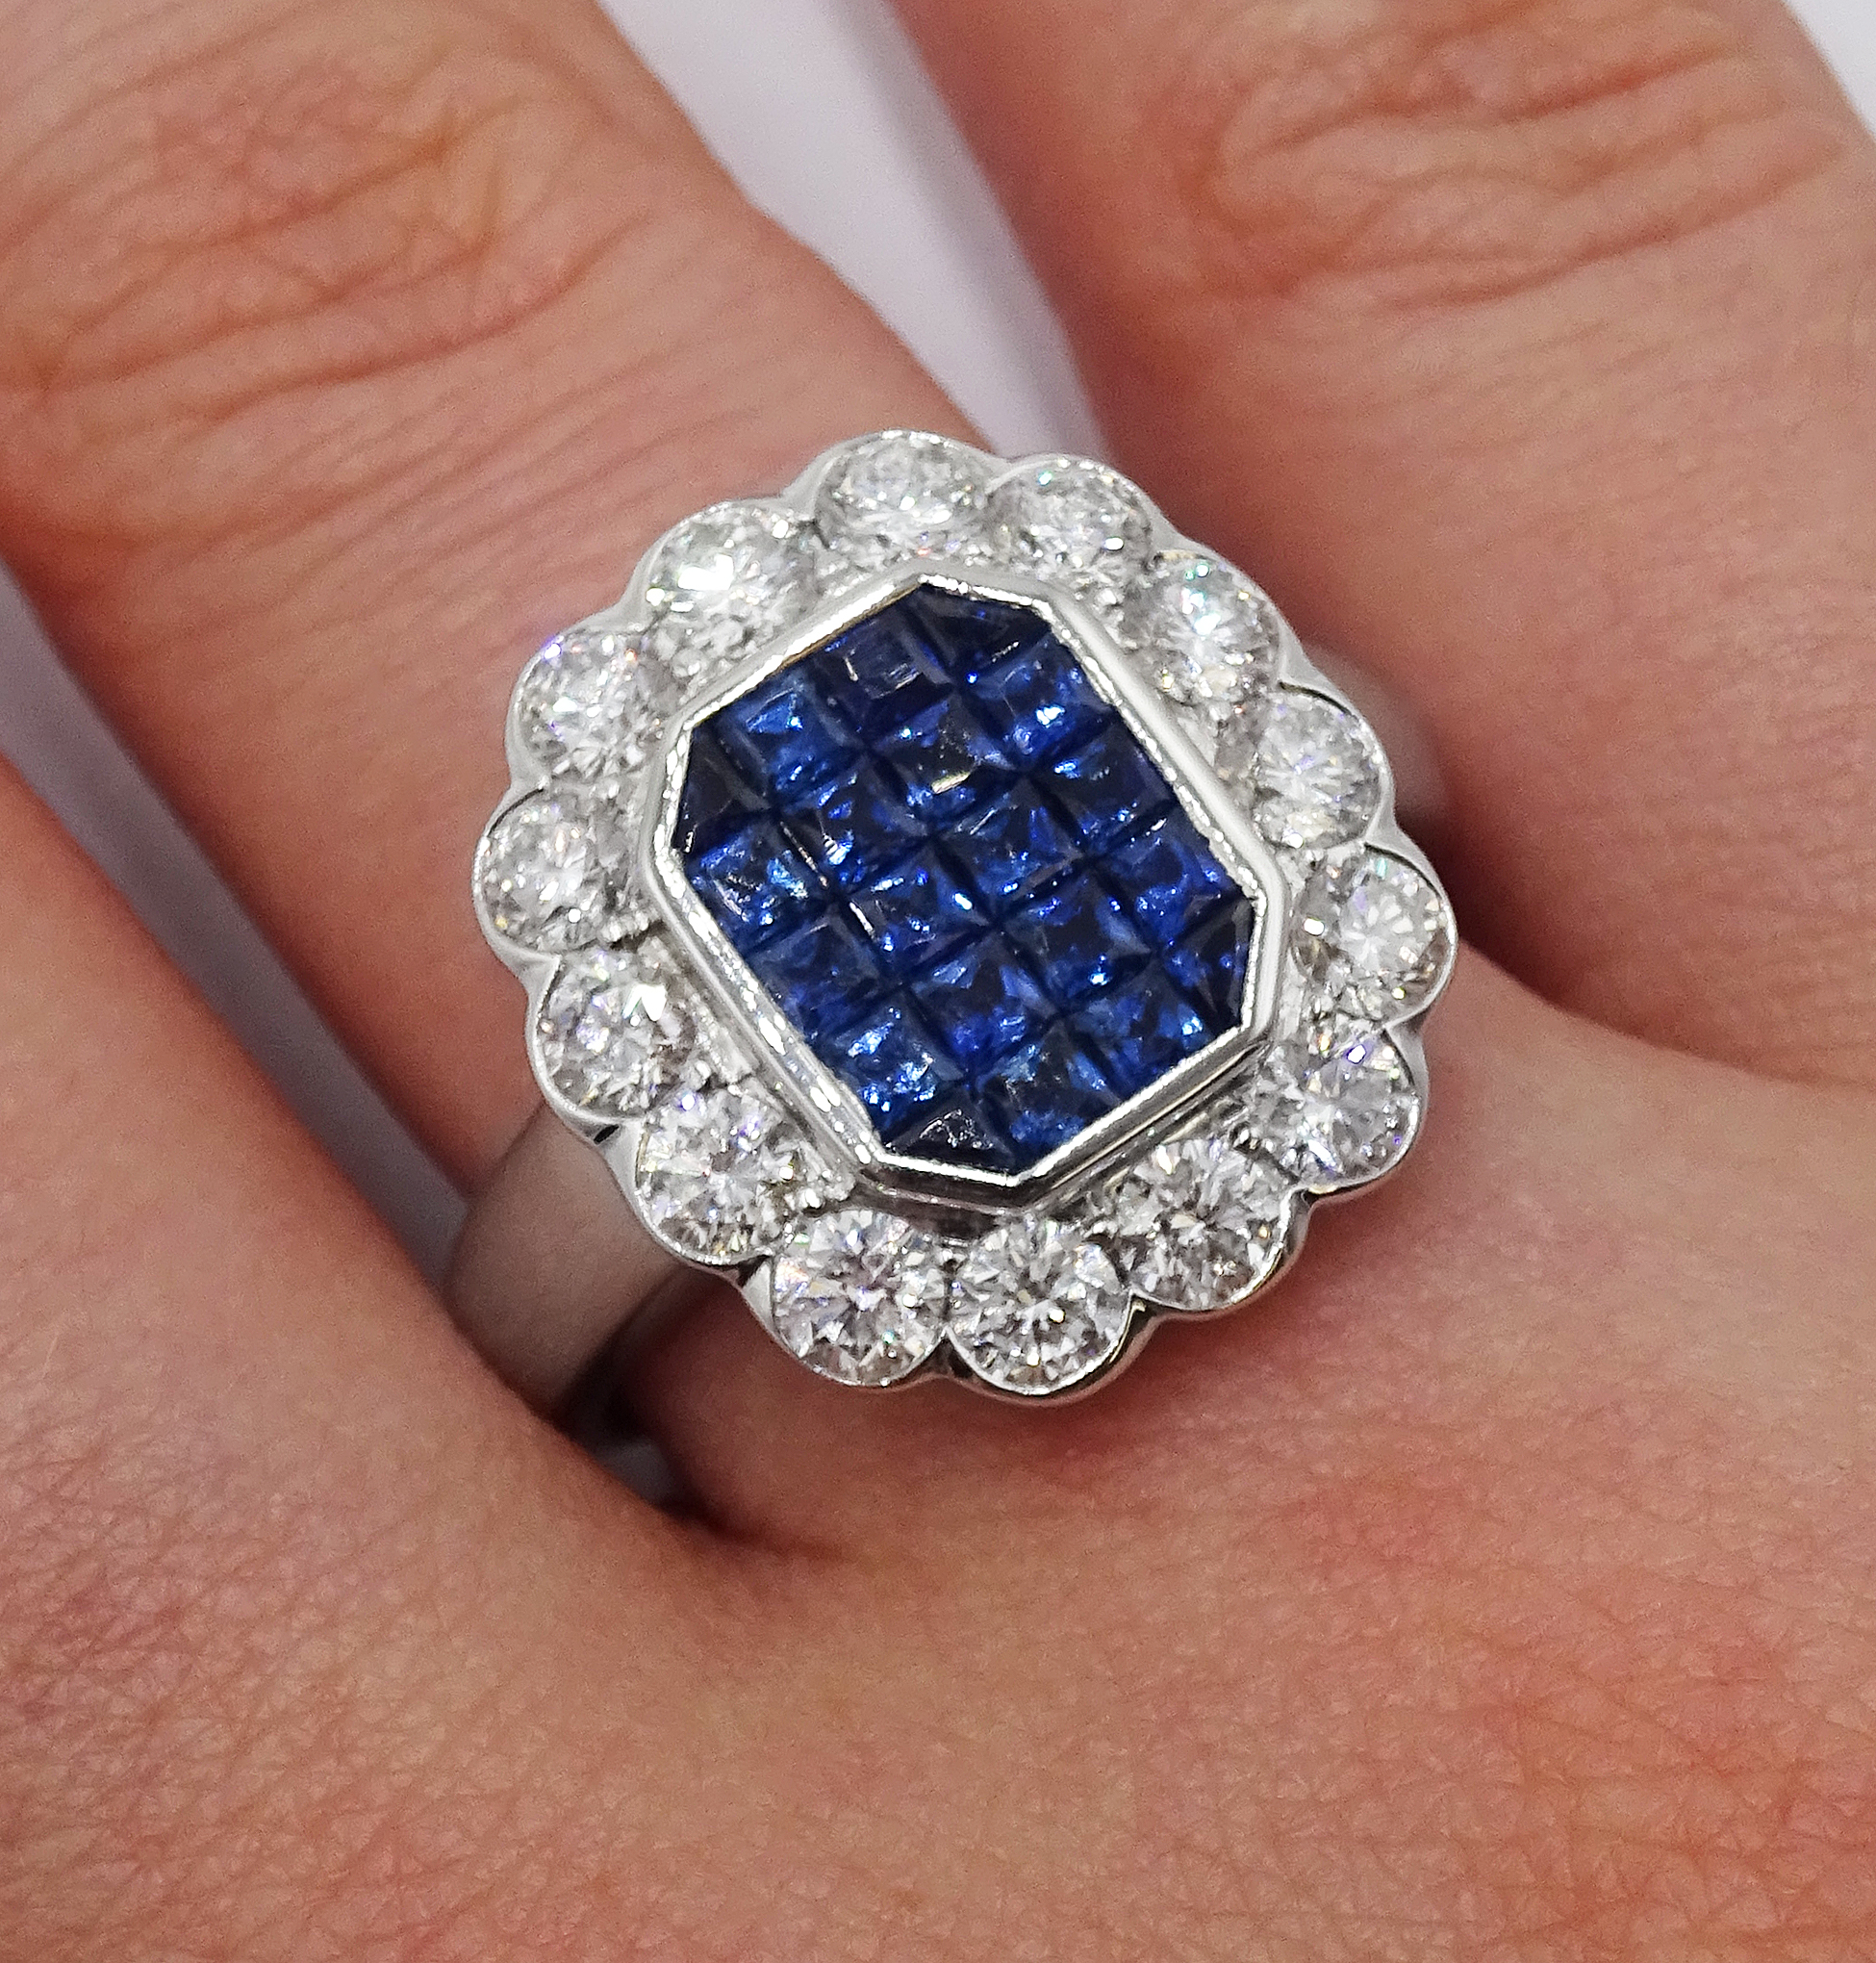 18ct white gold, sapphire and diamond cluster ring - Image 2 of 5